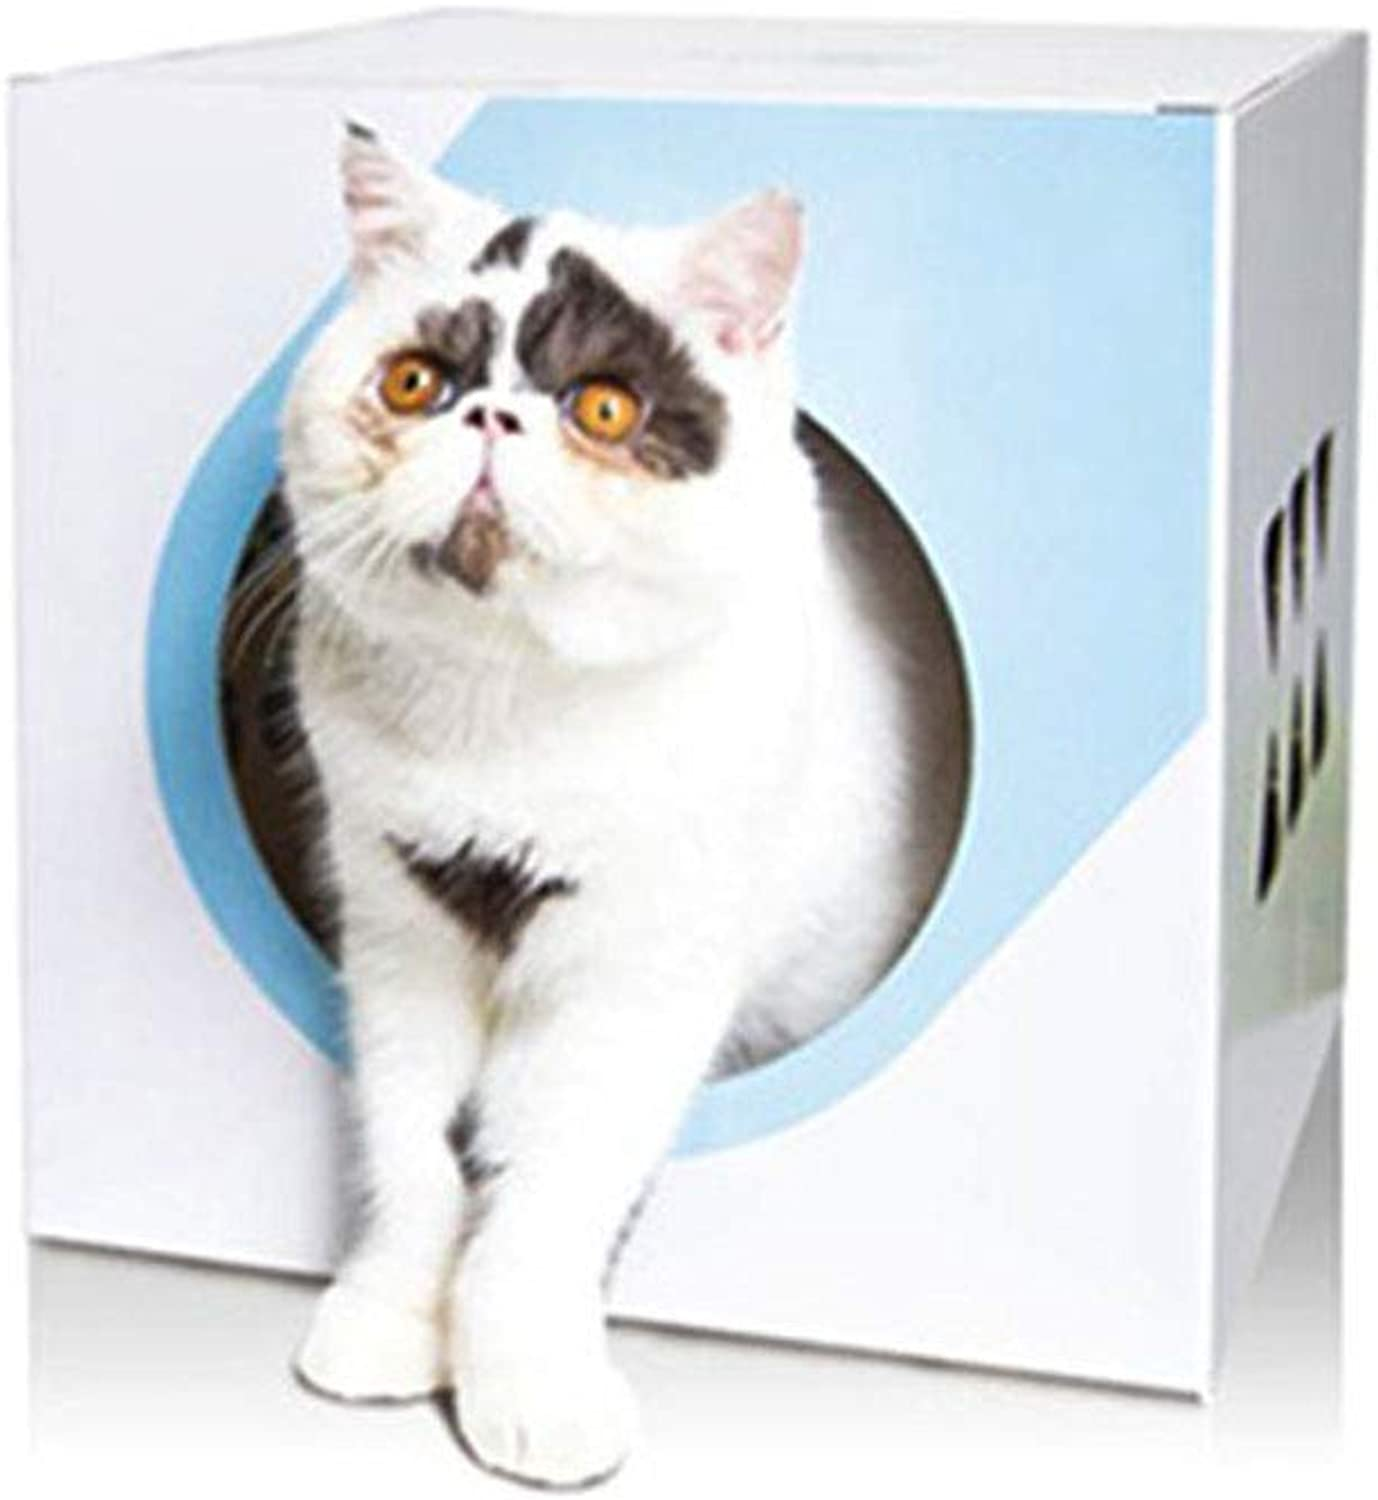 Cat Cube Pet House Condo Hideout Bed Jungle Combo Tunnel Hut Need to Assemble Yourself MultiPurpose Cat Corrugated Paper Scratch Board Curious Toys bluee